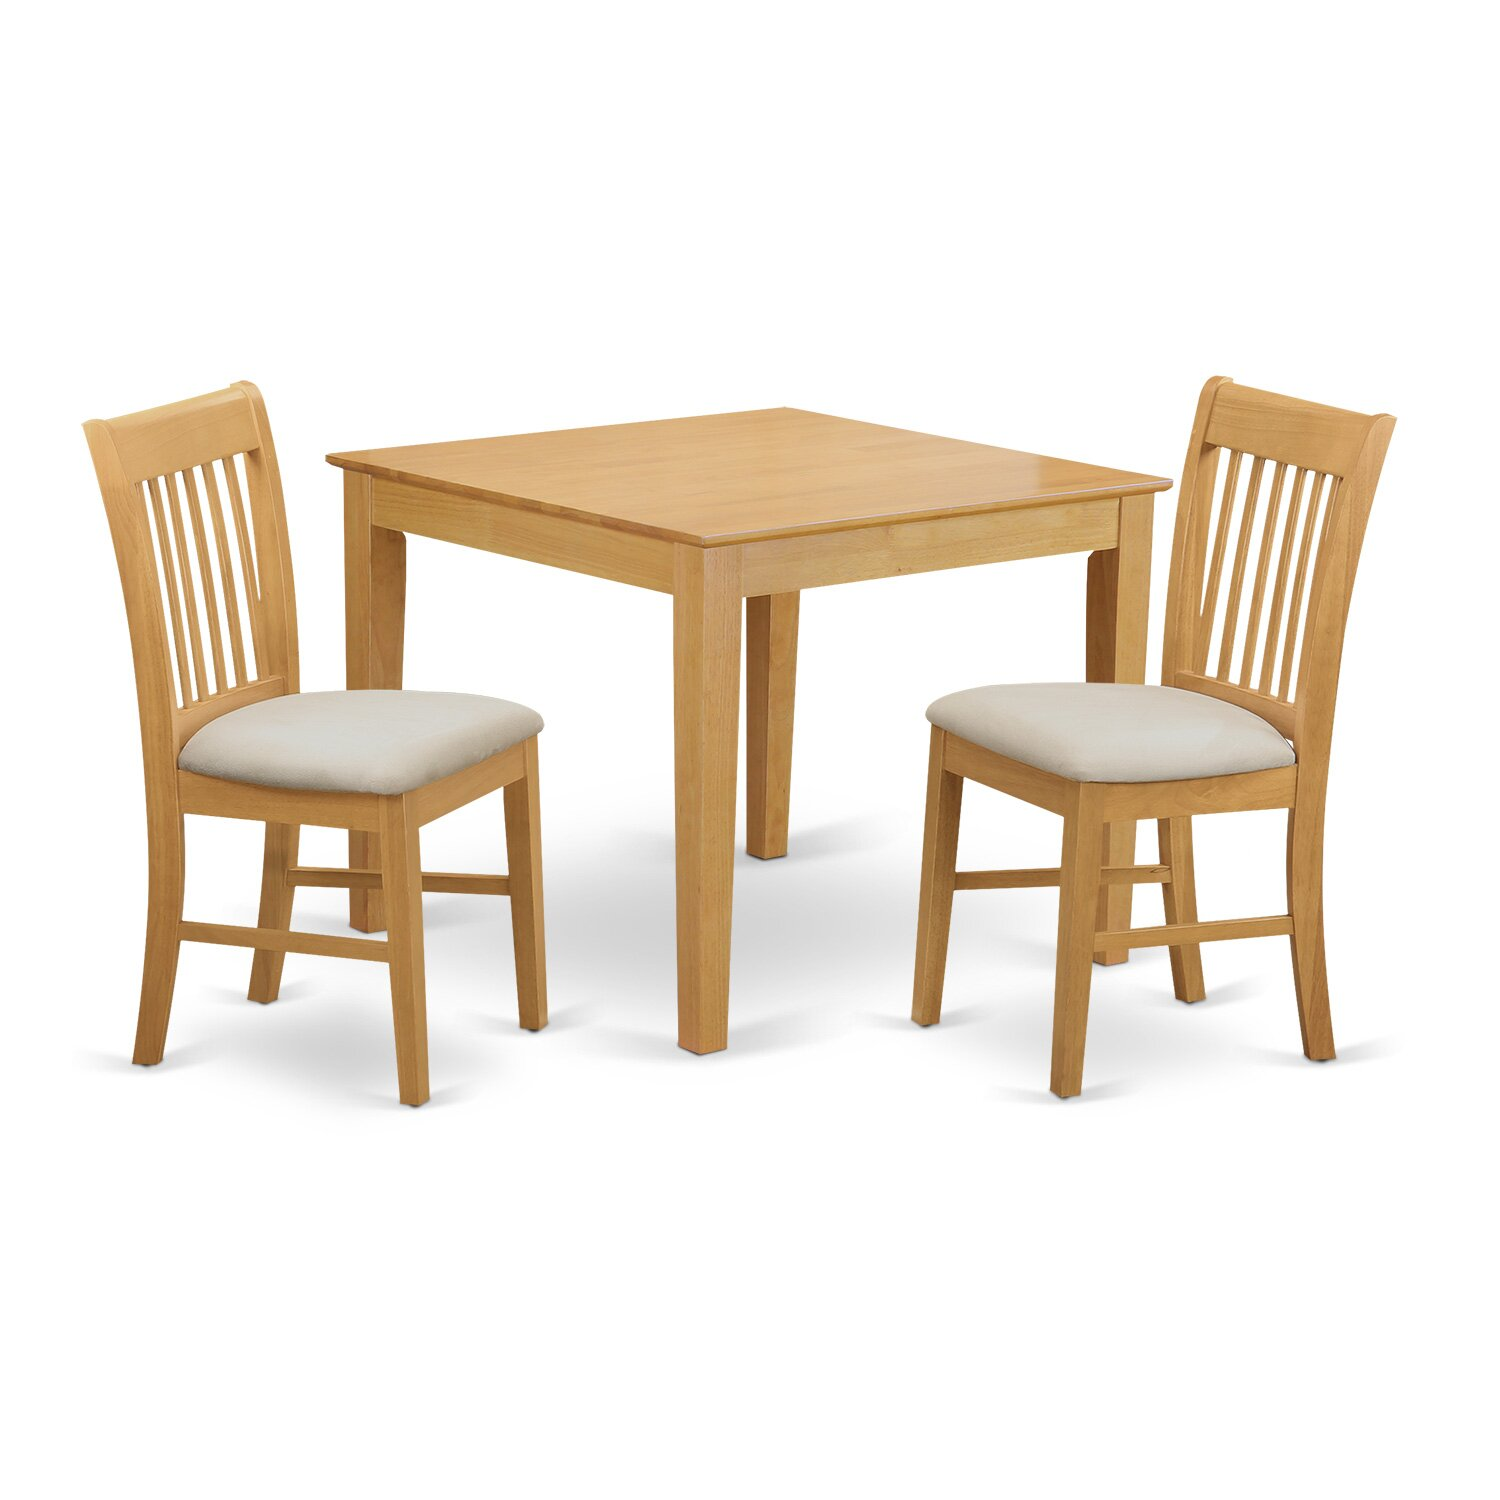 East west oxford 3 piece dining set reviews wayfair for Dining room table for 2